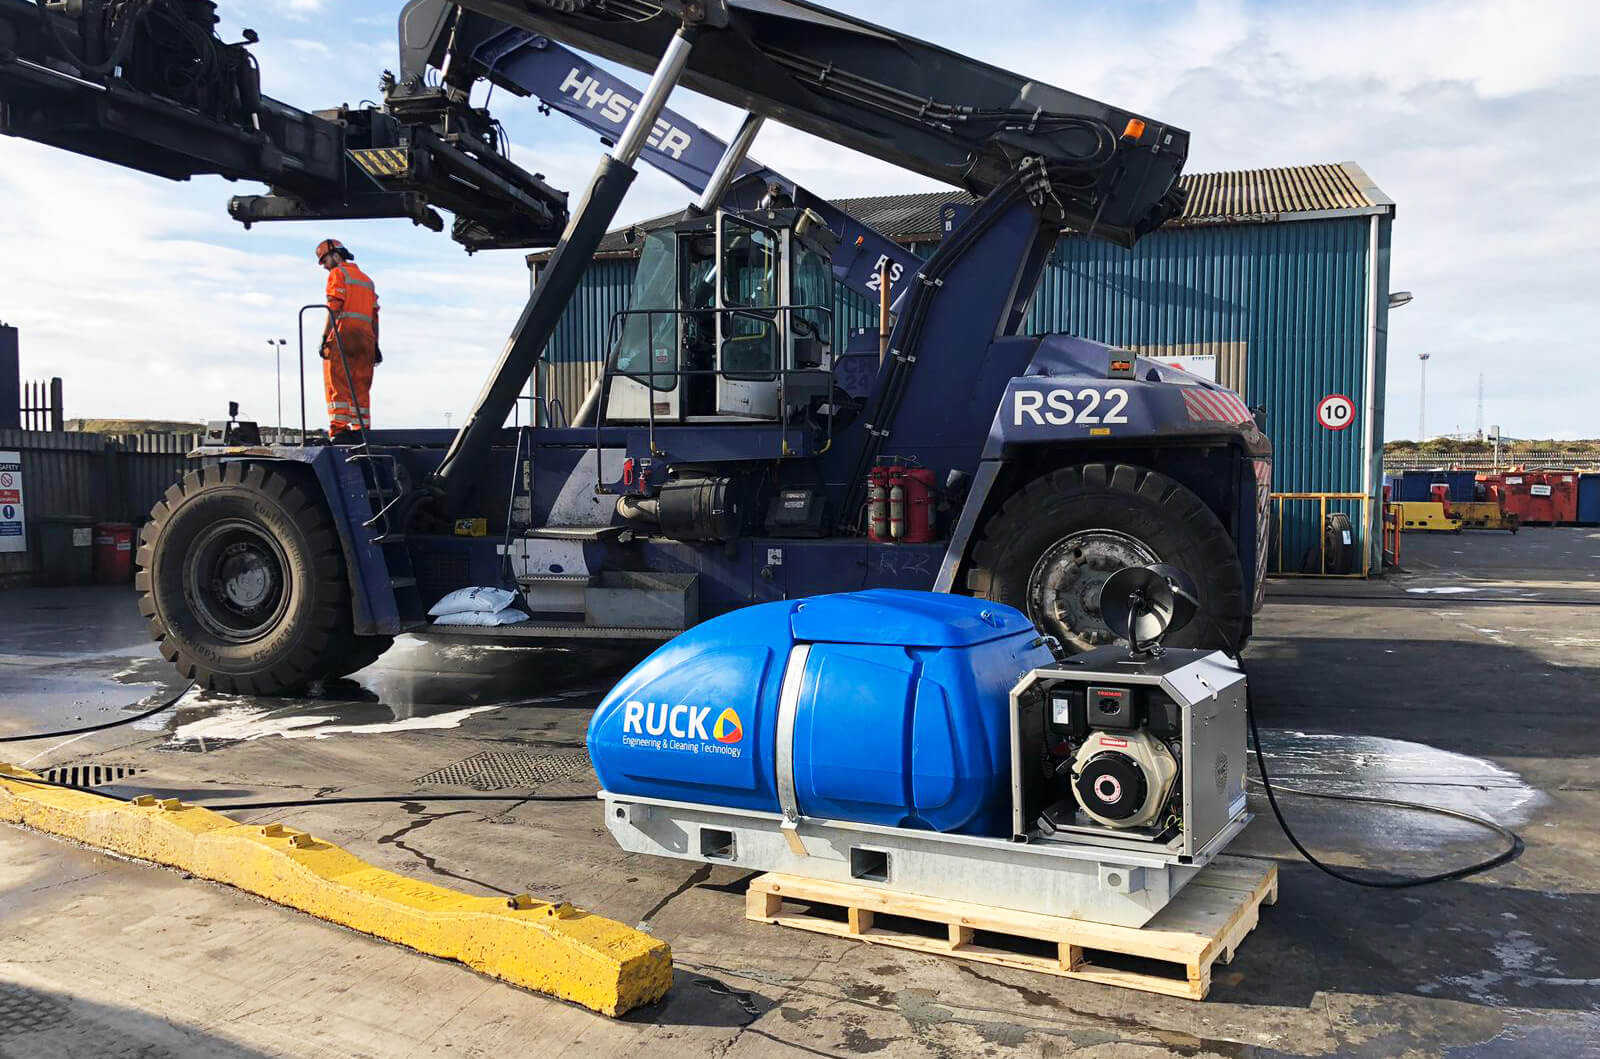 Ruck Engineering - Supplying industrial pressure washer equipment throughout Middlesbrough, Teesside and the Tees Valley.